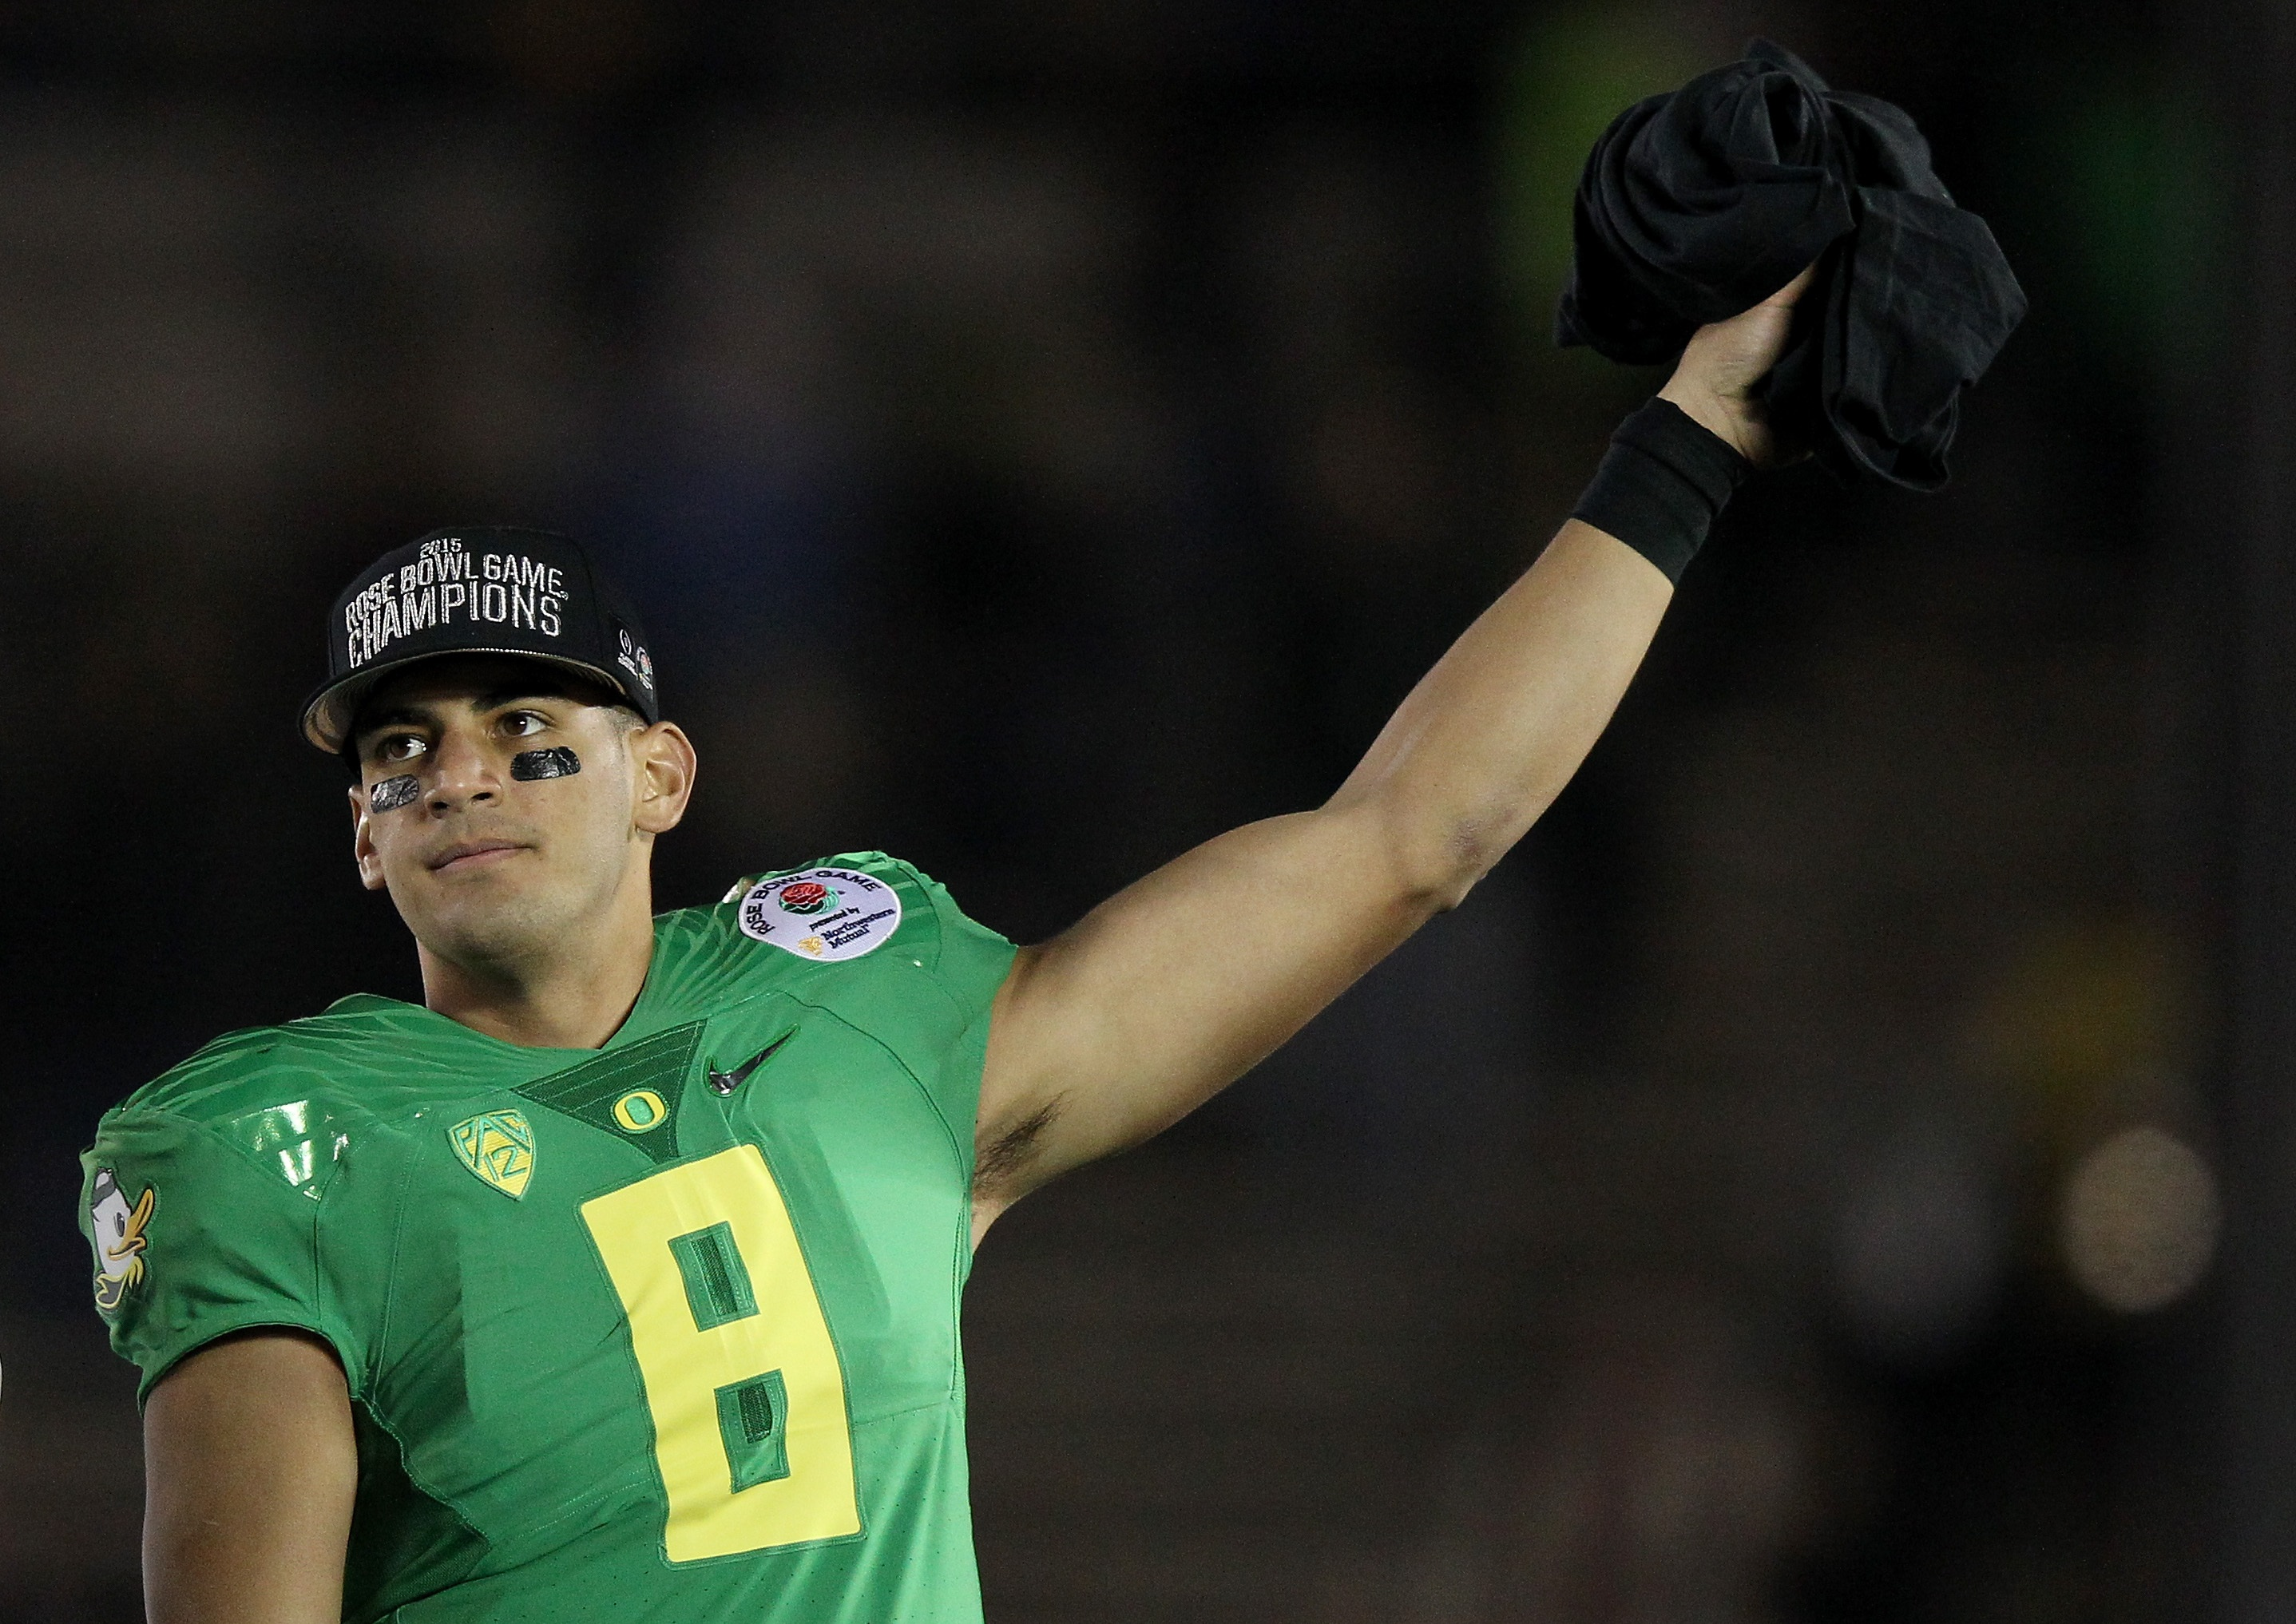 PASADENA, CA - JANUARY 01: Quarterback Marcus Mariota #8 of the Oregon Ducks reacts after defeating the Florida State Seminoles 59-20 in the College Football Playoff Semifinal at the Rose Bowl Game presented by Northwestern Mutual at the Rose Bowl on January 1, 2015 in Pasadena, California. (Photo by Ezra Shaw/Getty Images)